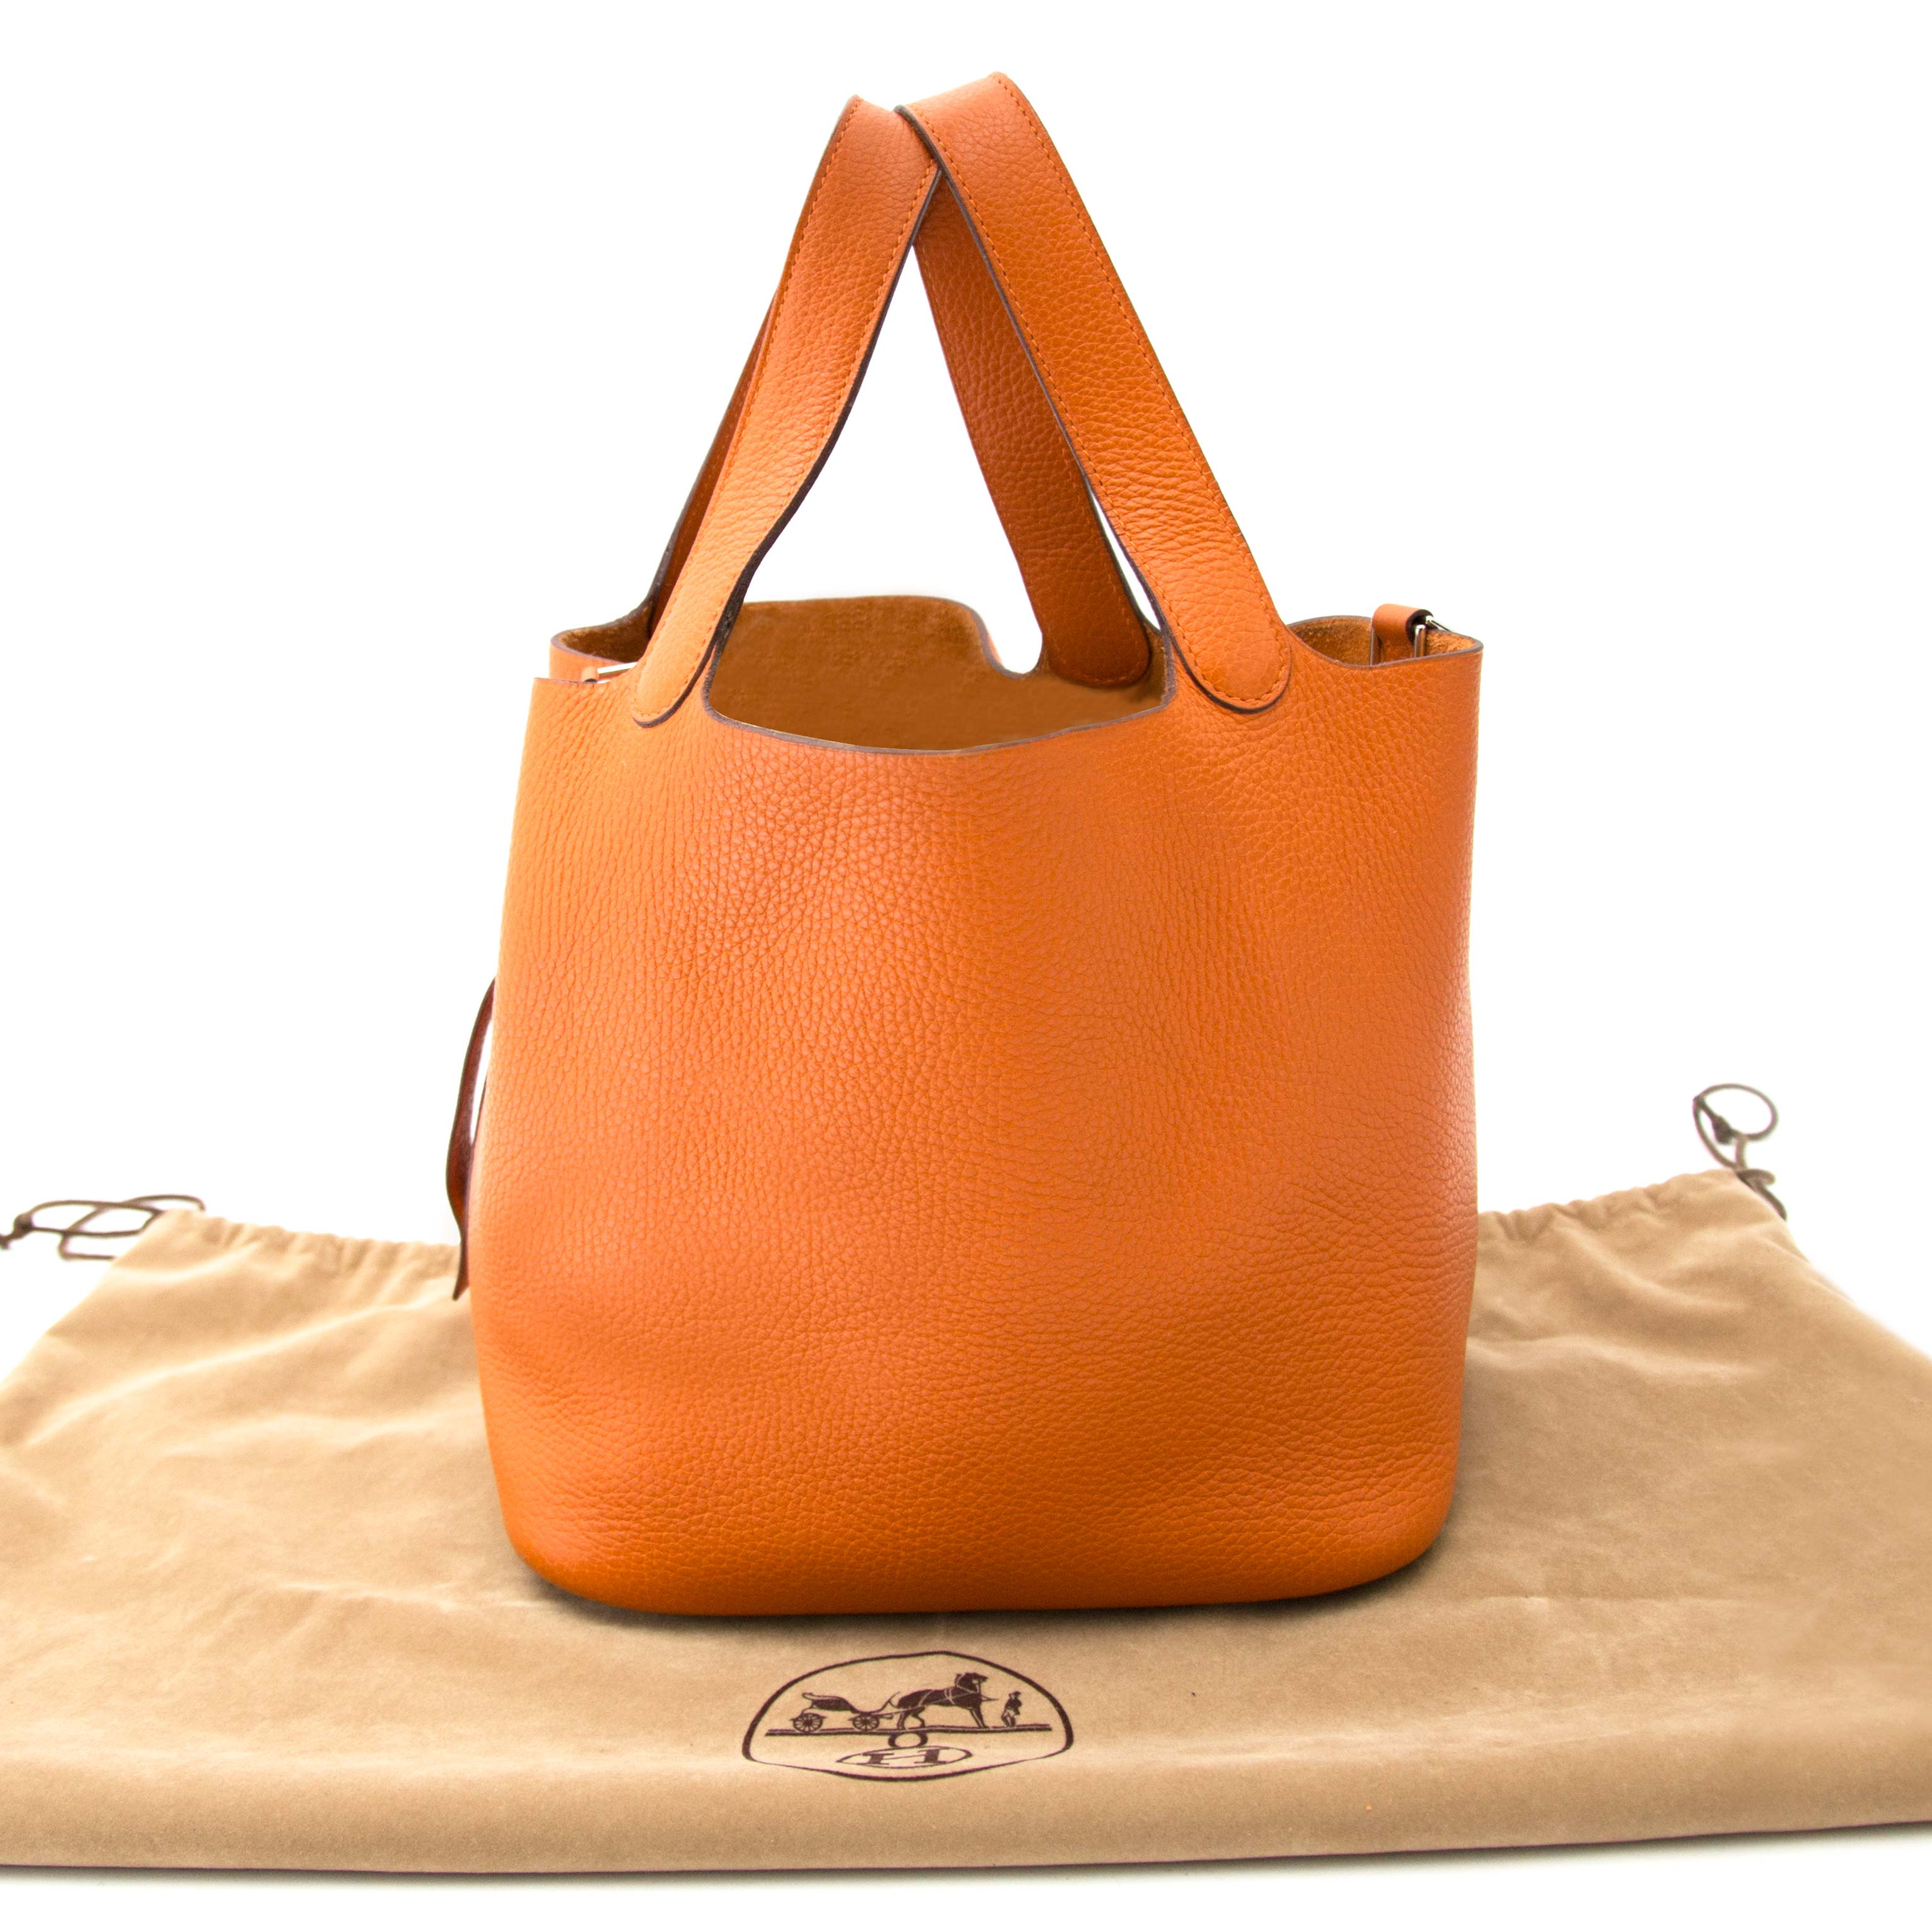 16043d139f ... best acheter en ligne seconde main sac a main hermes orange togo lock  bag a939a ba358